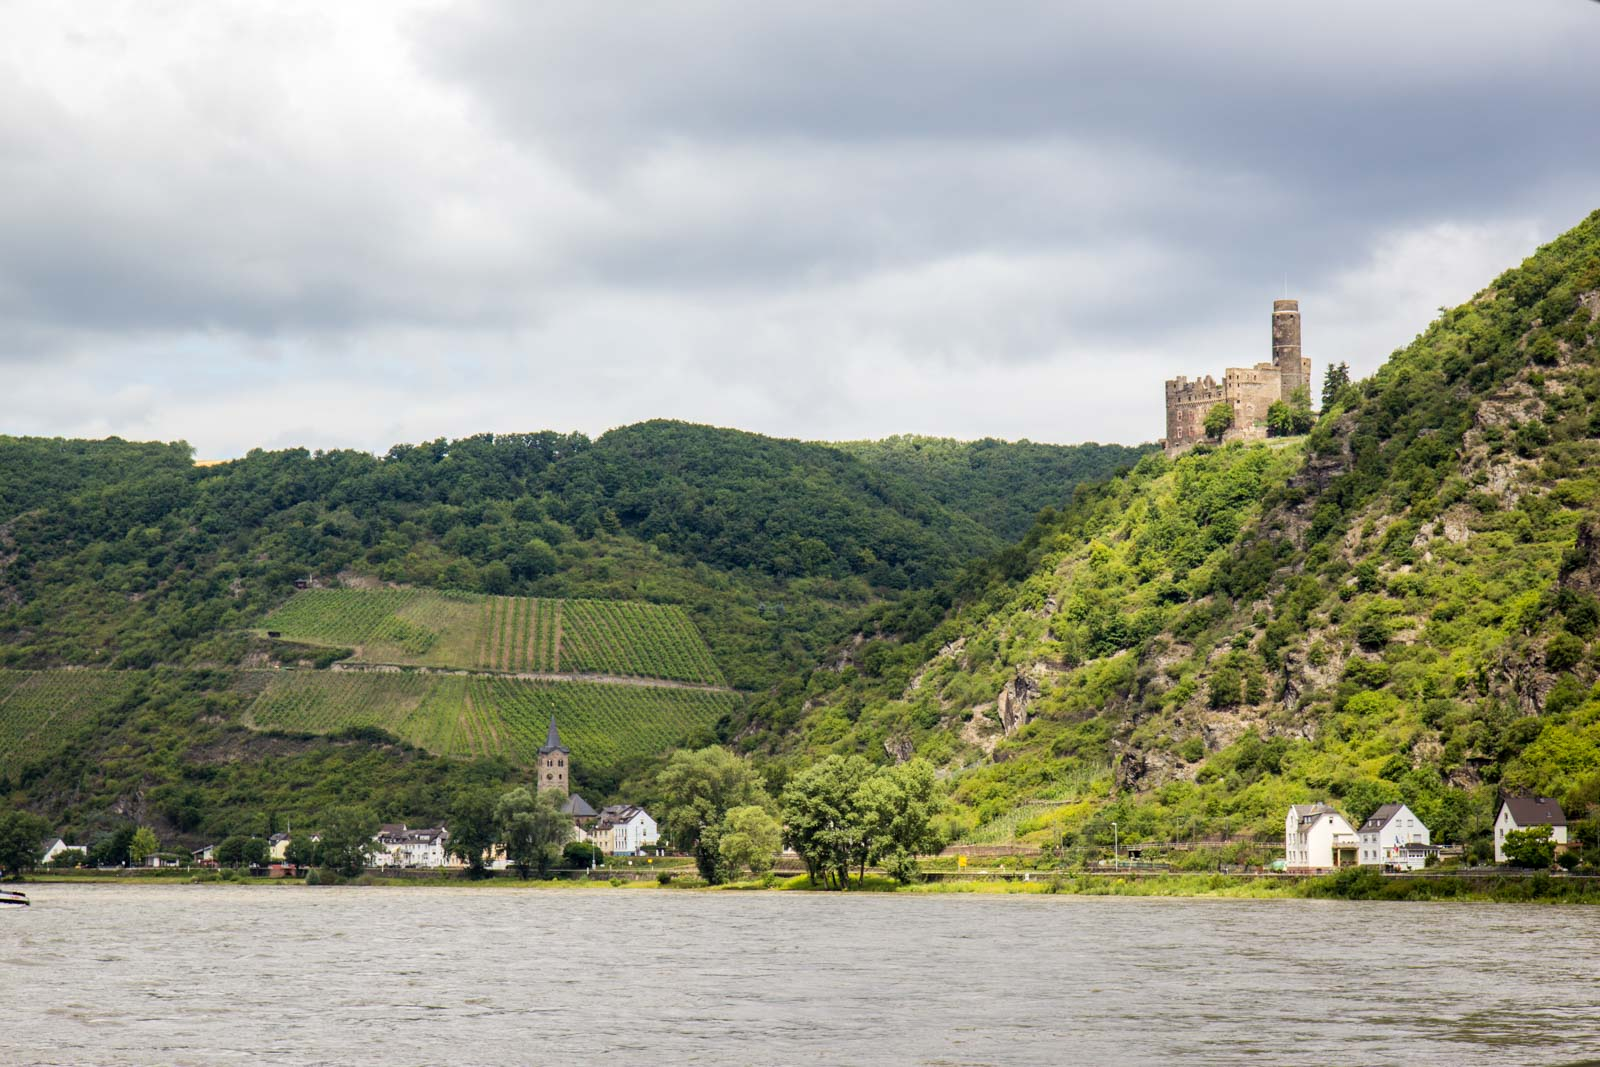 Upper Middle Rhine Valley, Germany, World Heritage Site